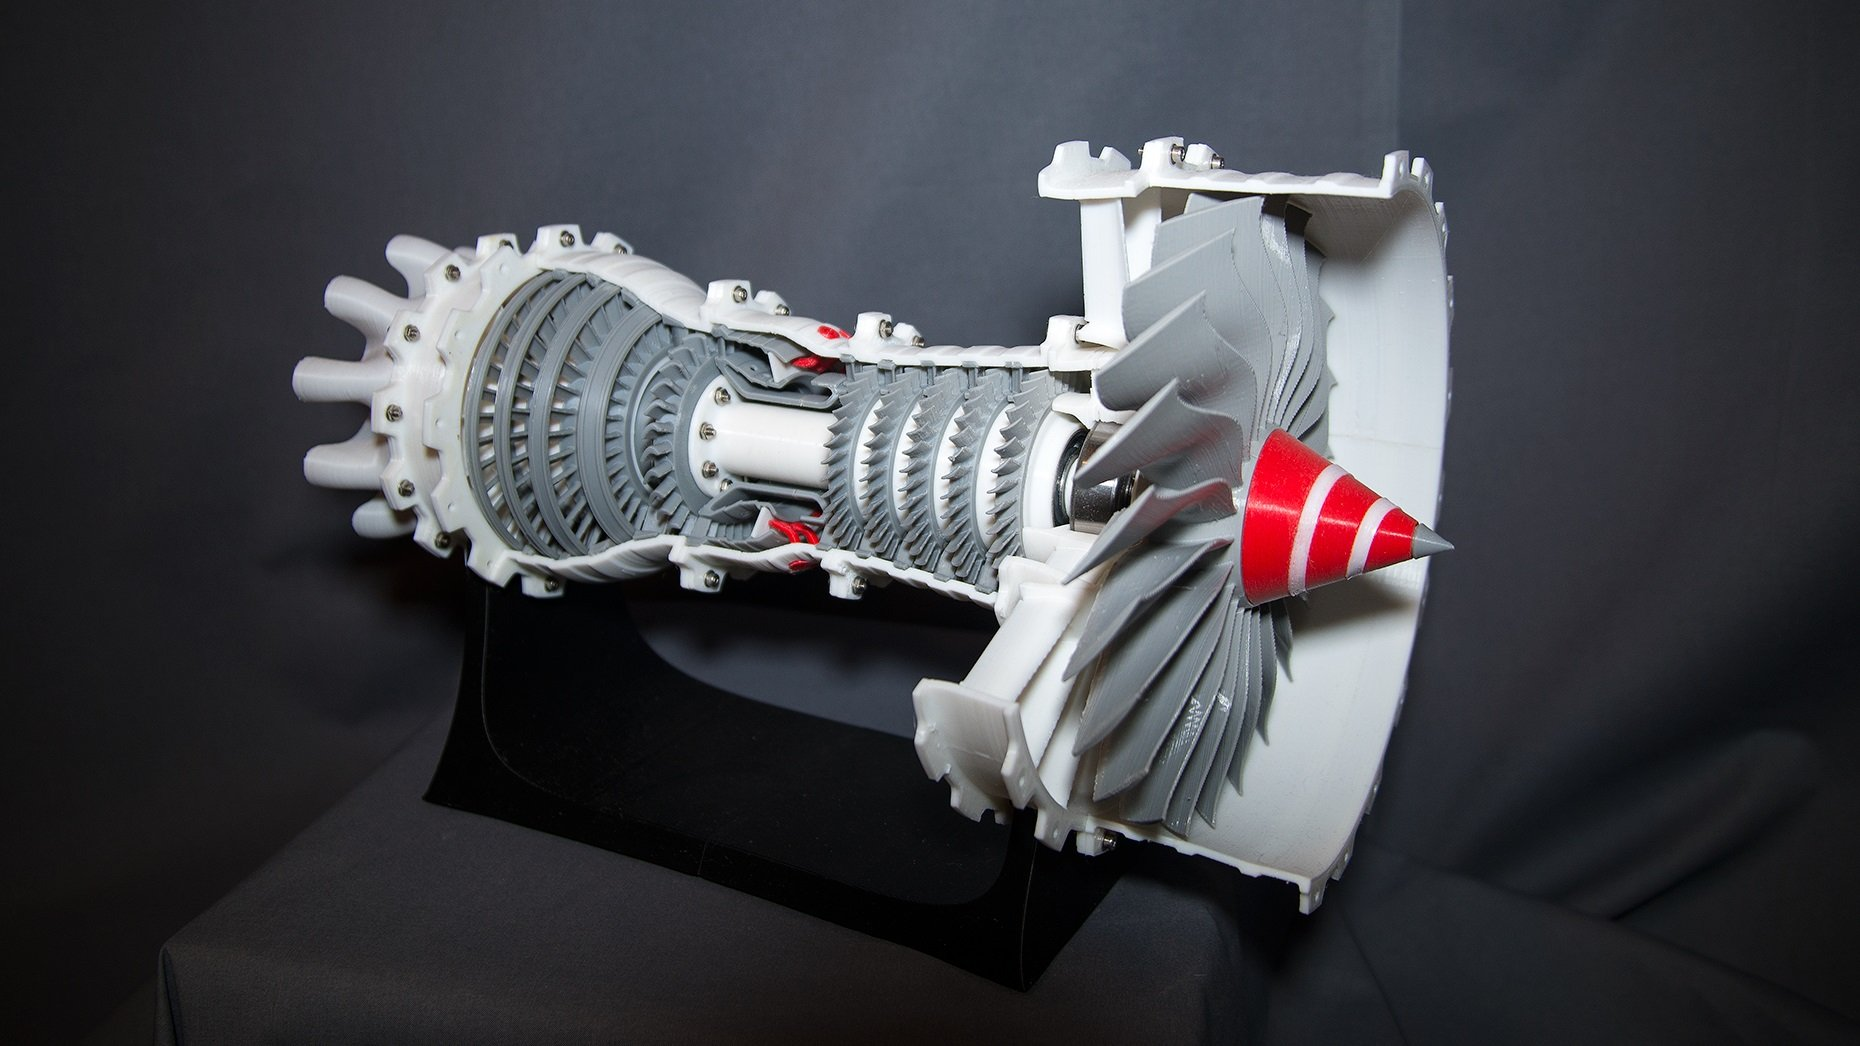 3D Printed Jet Engines: 10 Great Projects to DIY | All3DP